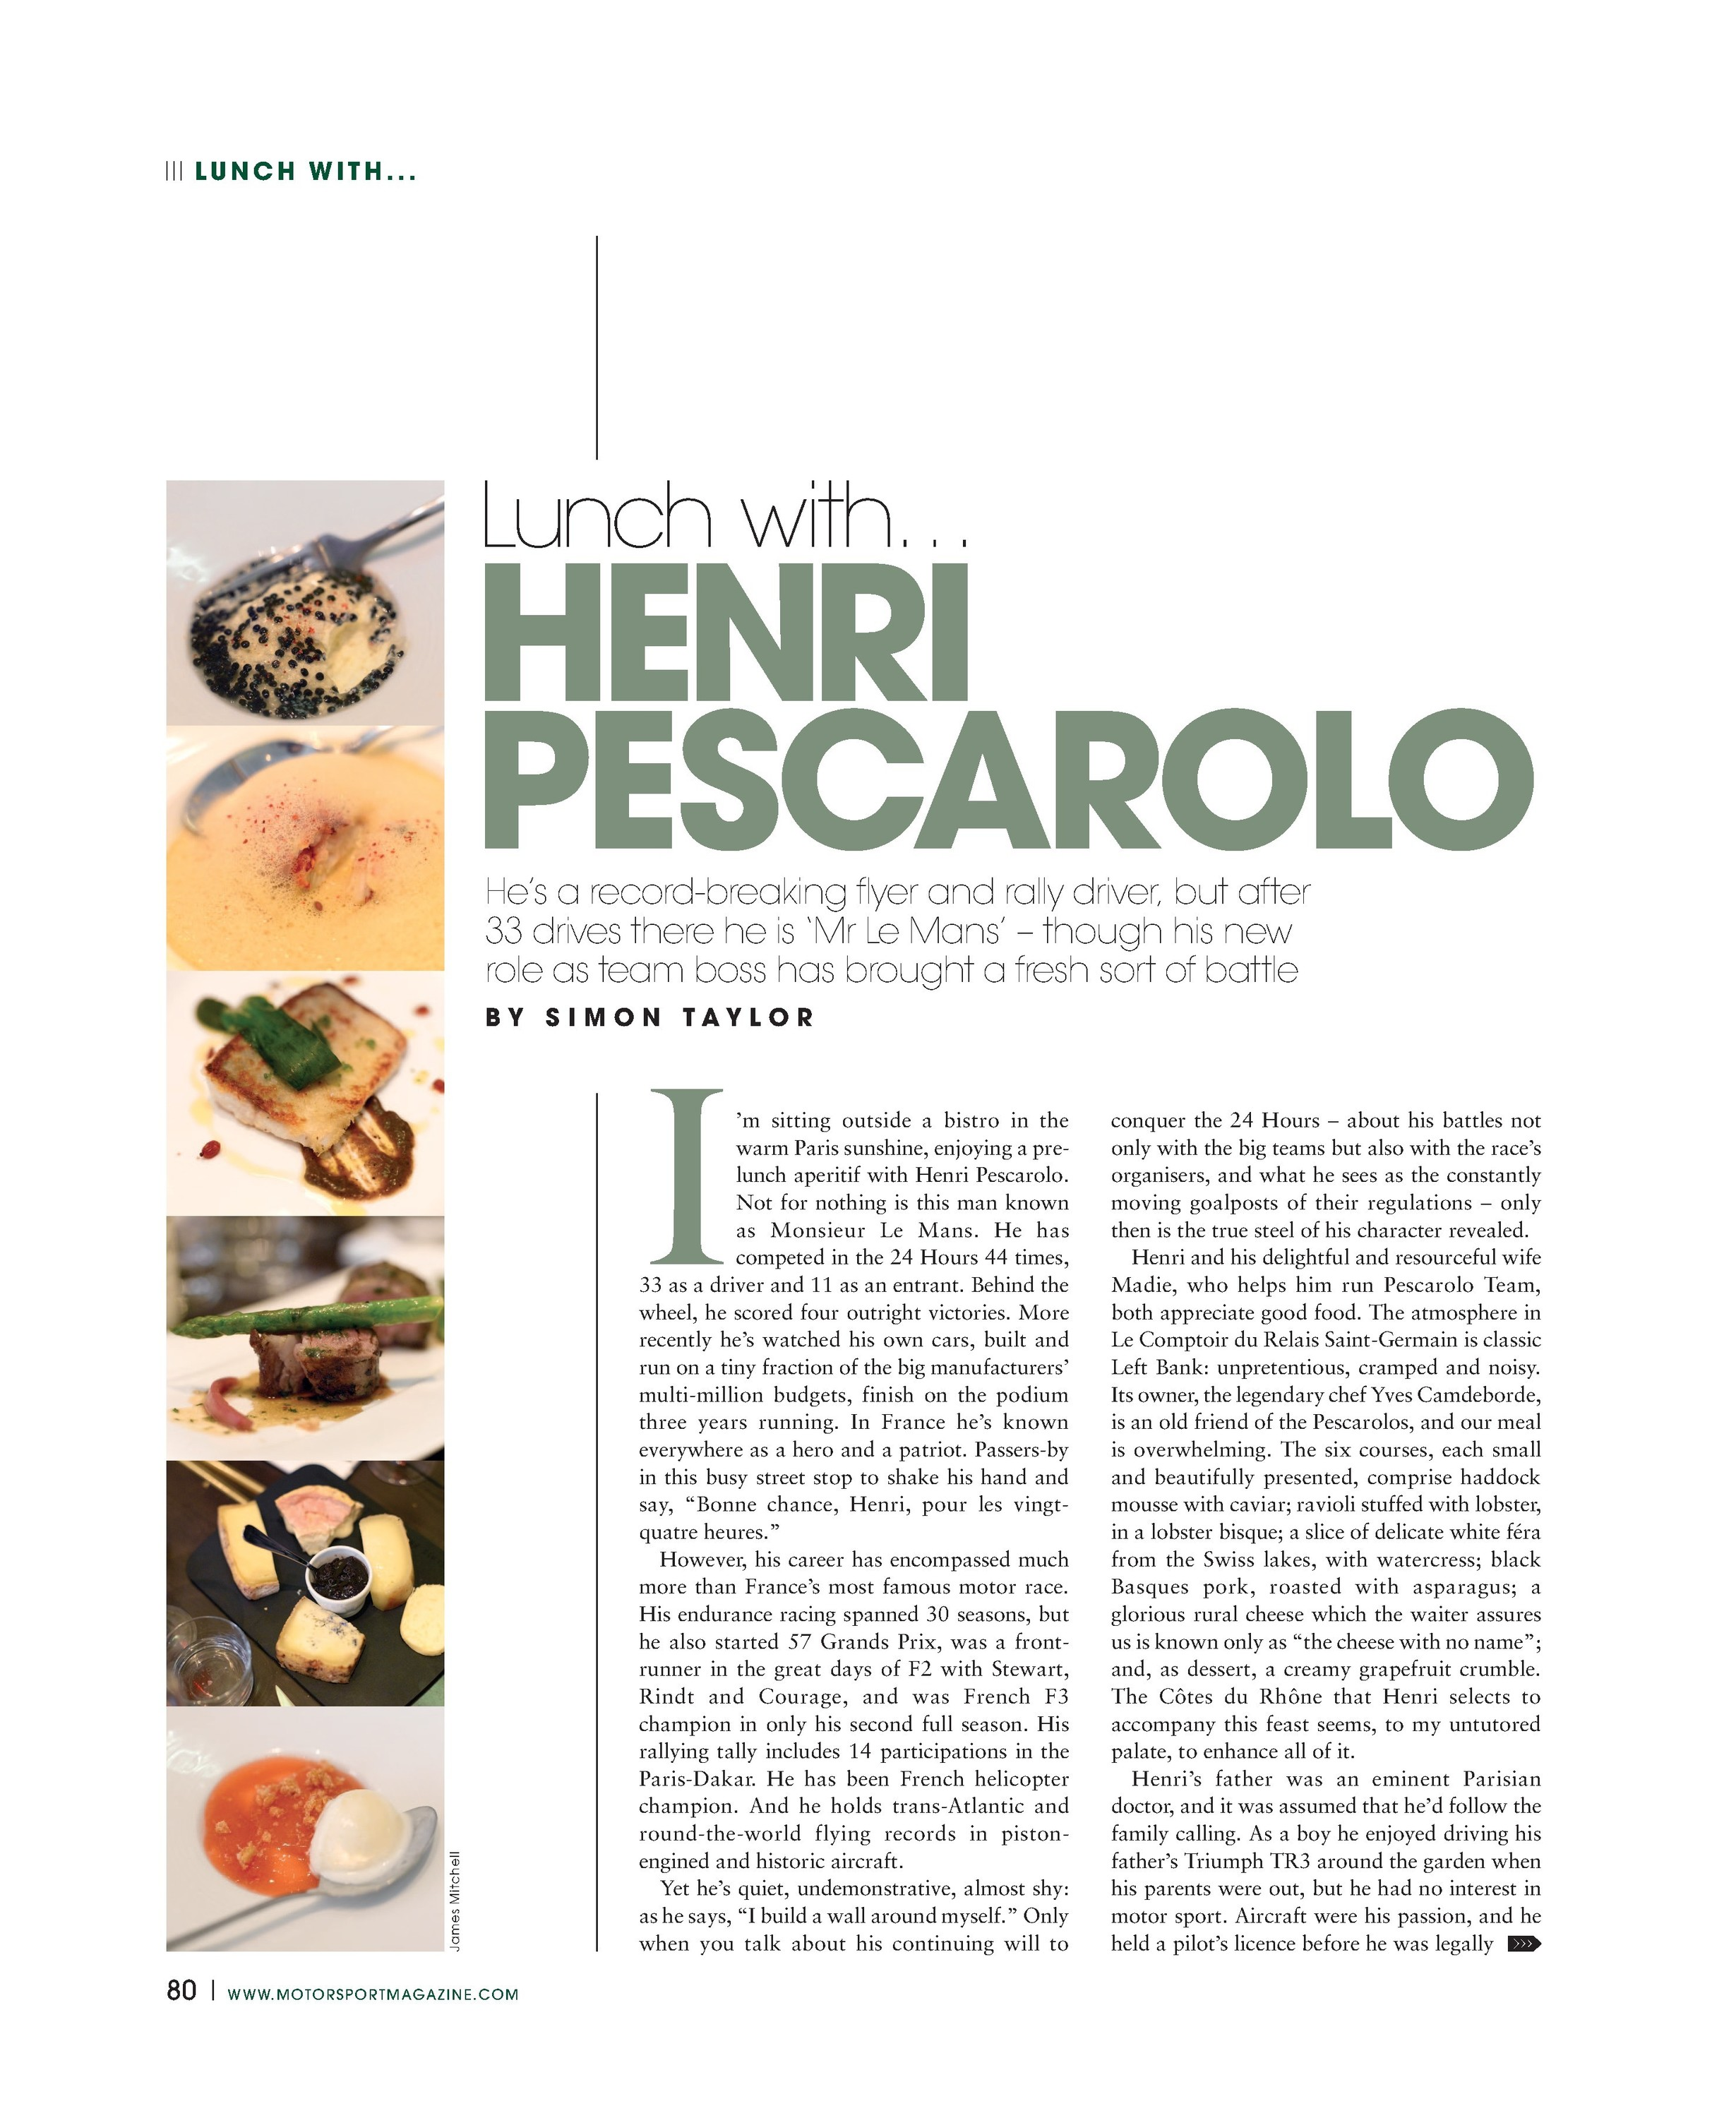 Lunch with... Henri Pescarolo image